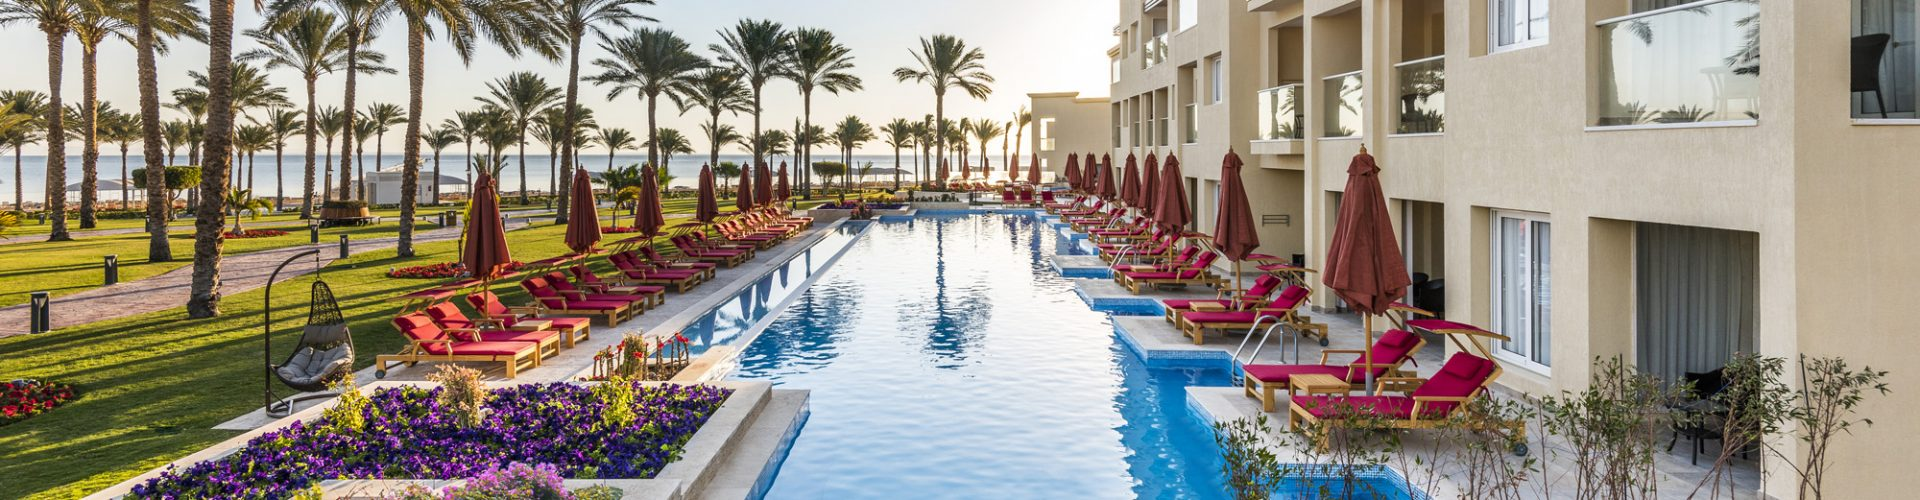 Rixos Seagate Sharm Egypt Holidaycheck Tripadvisor The Best Ultra All inclusive Luxury Outstanding Extraordinary Pool Beach Privacy